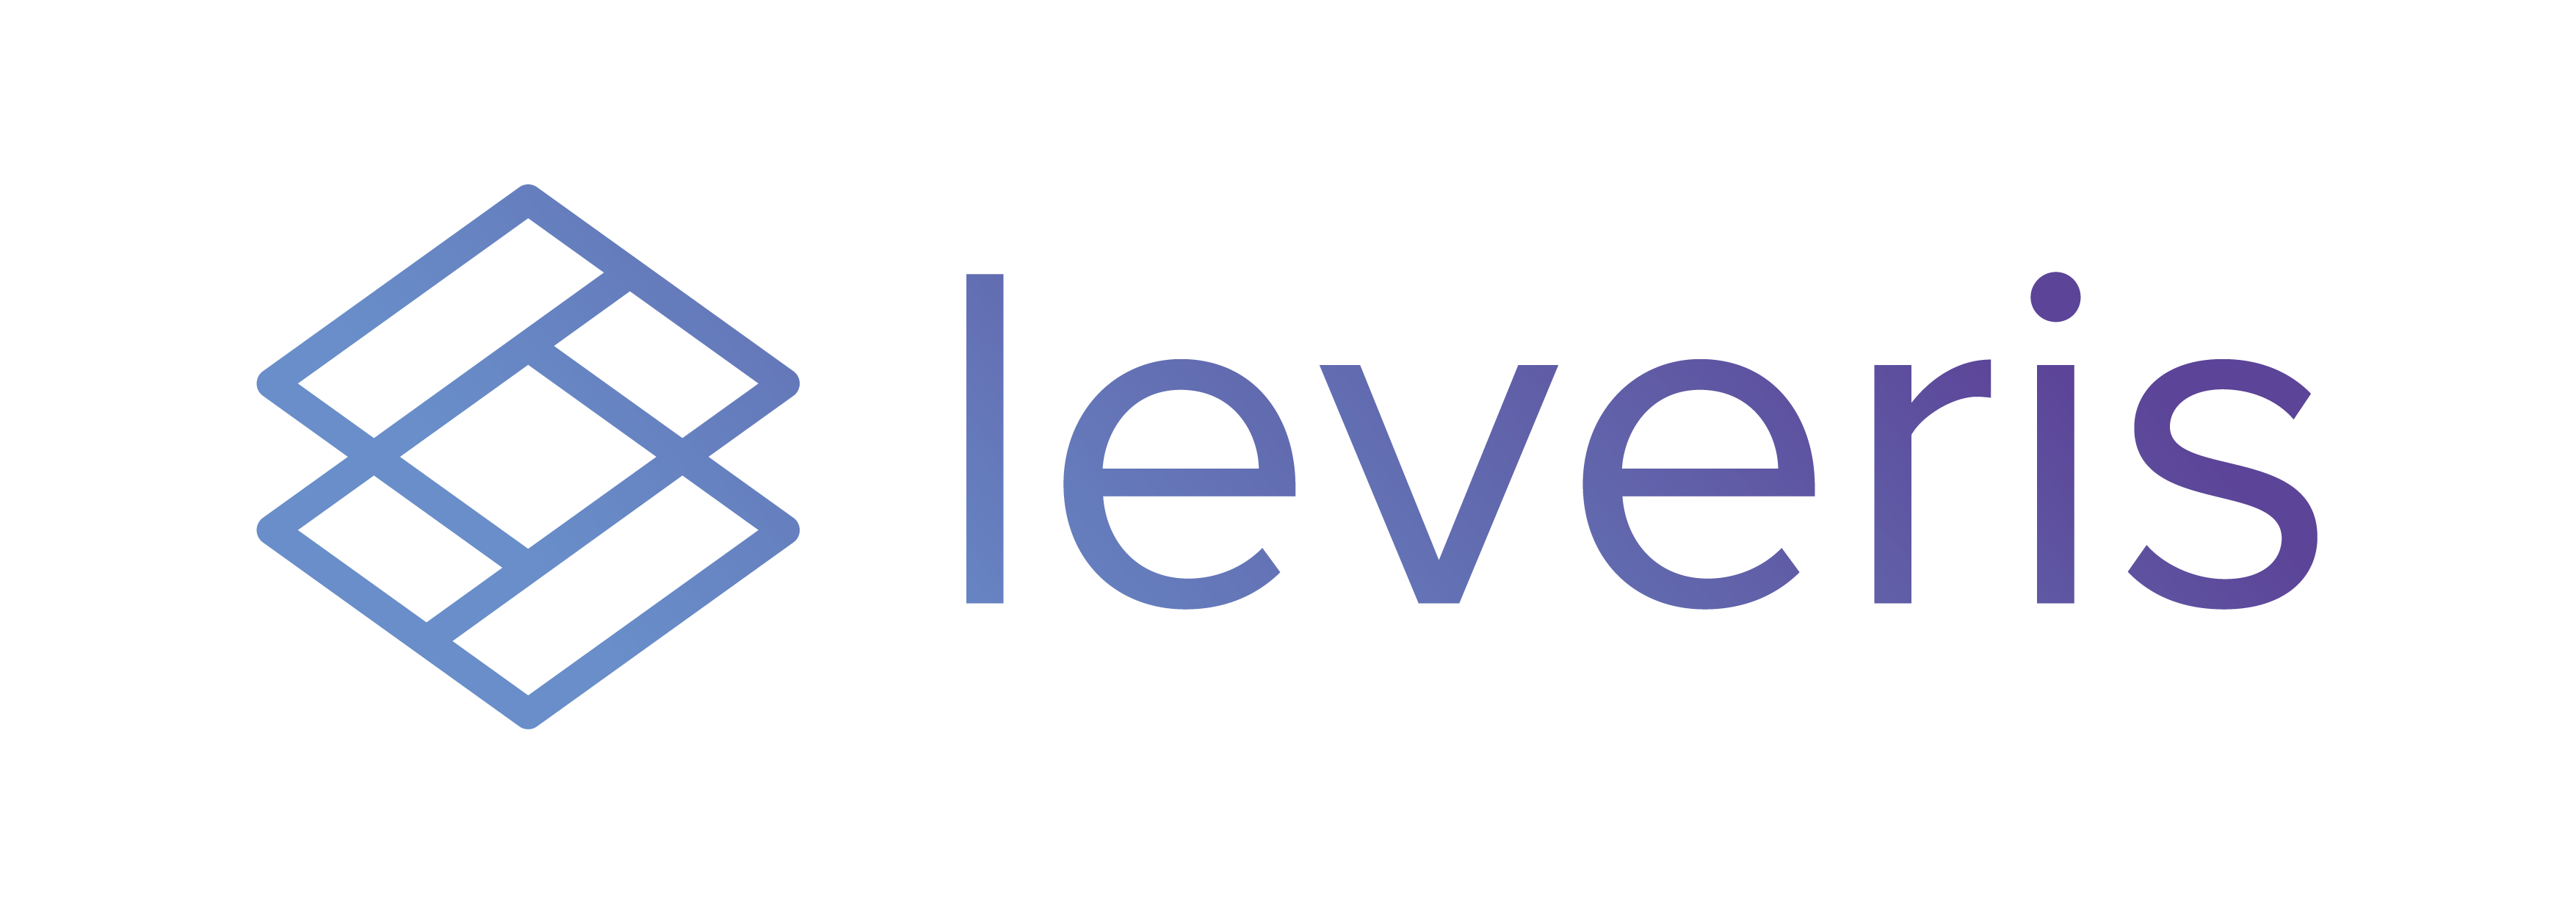 Leveris logo300 gradient